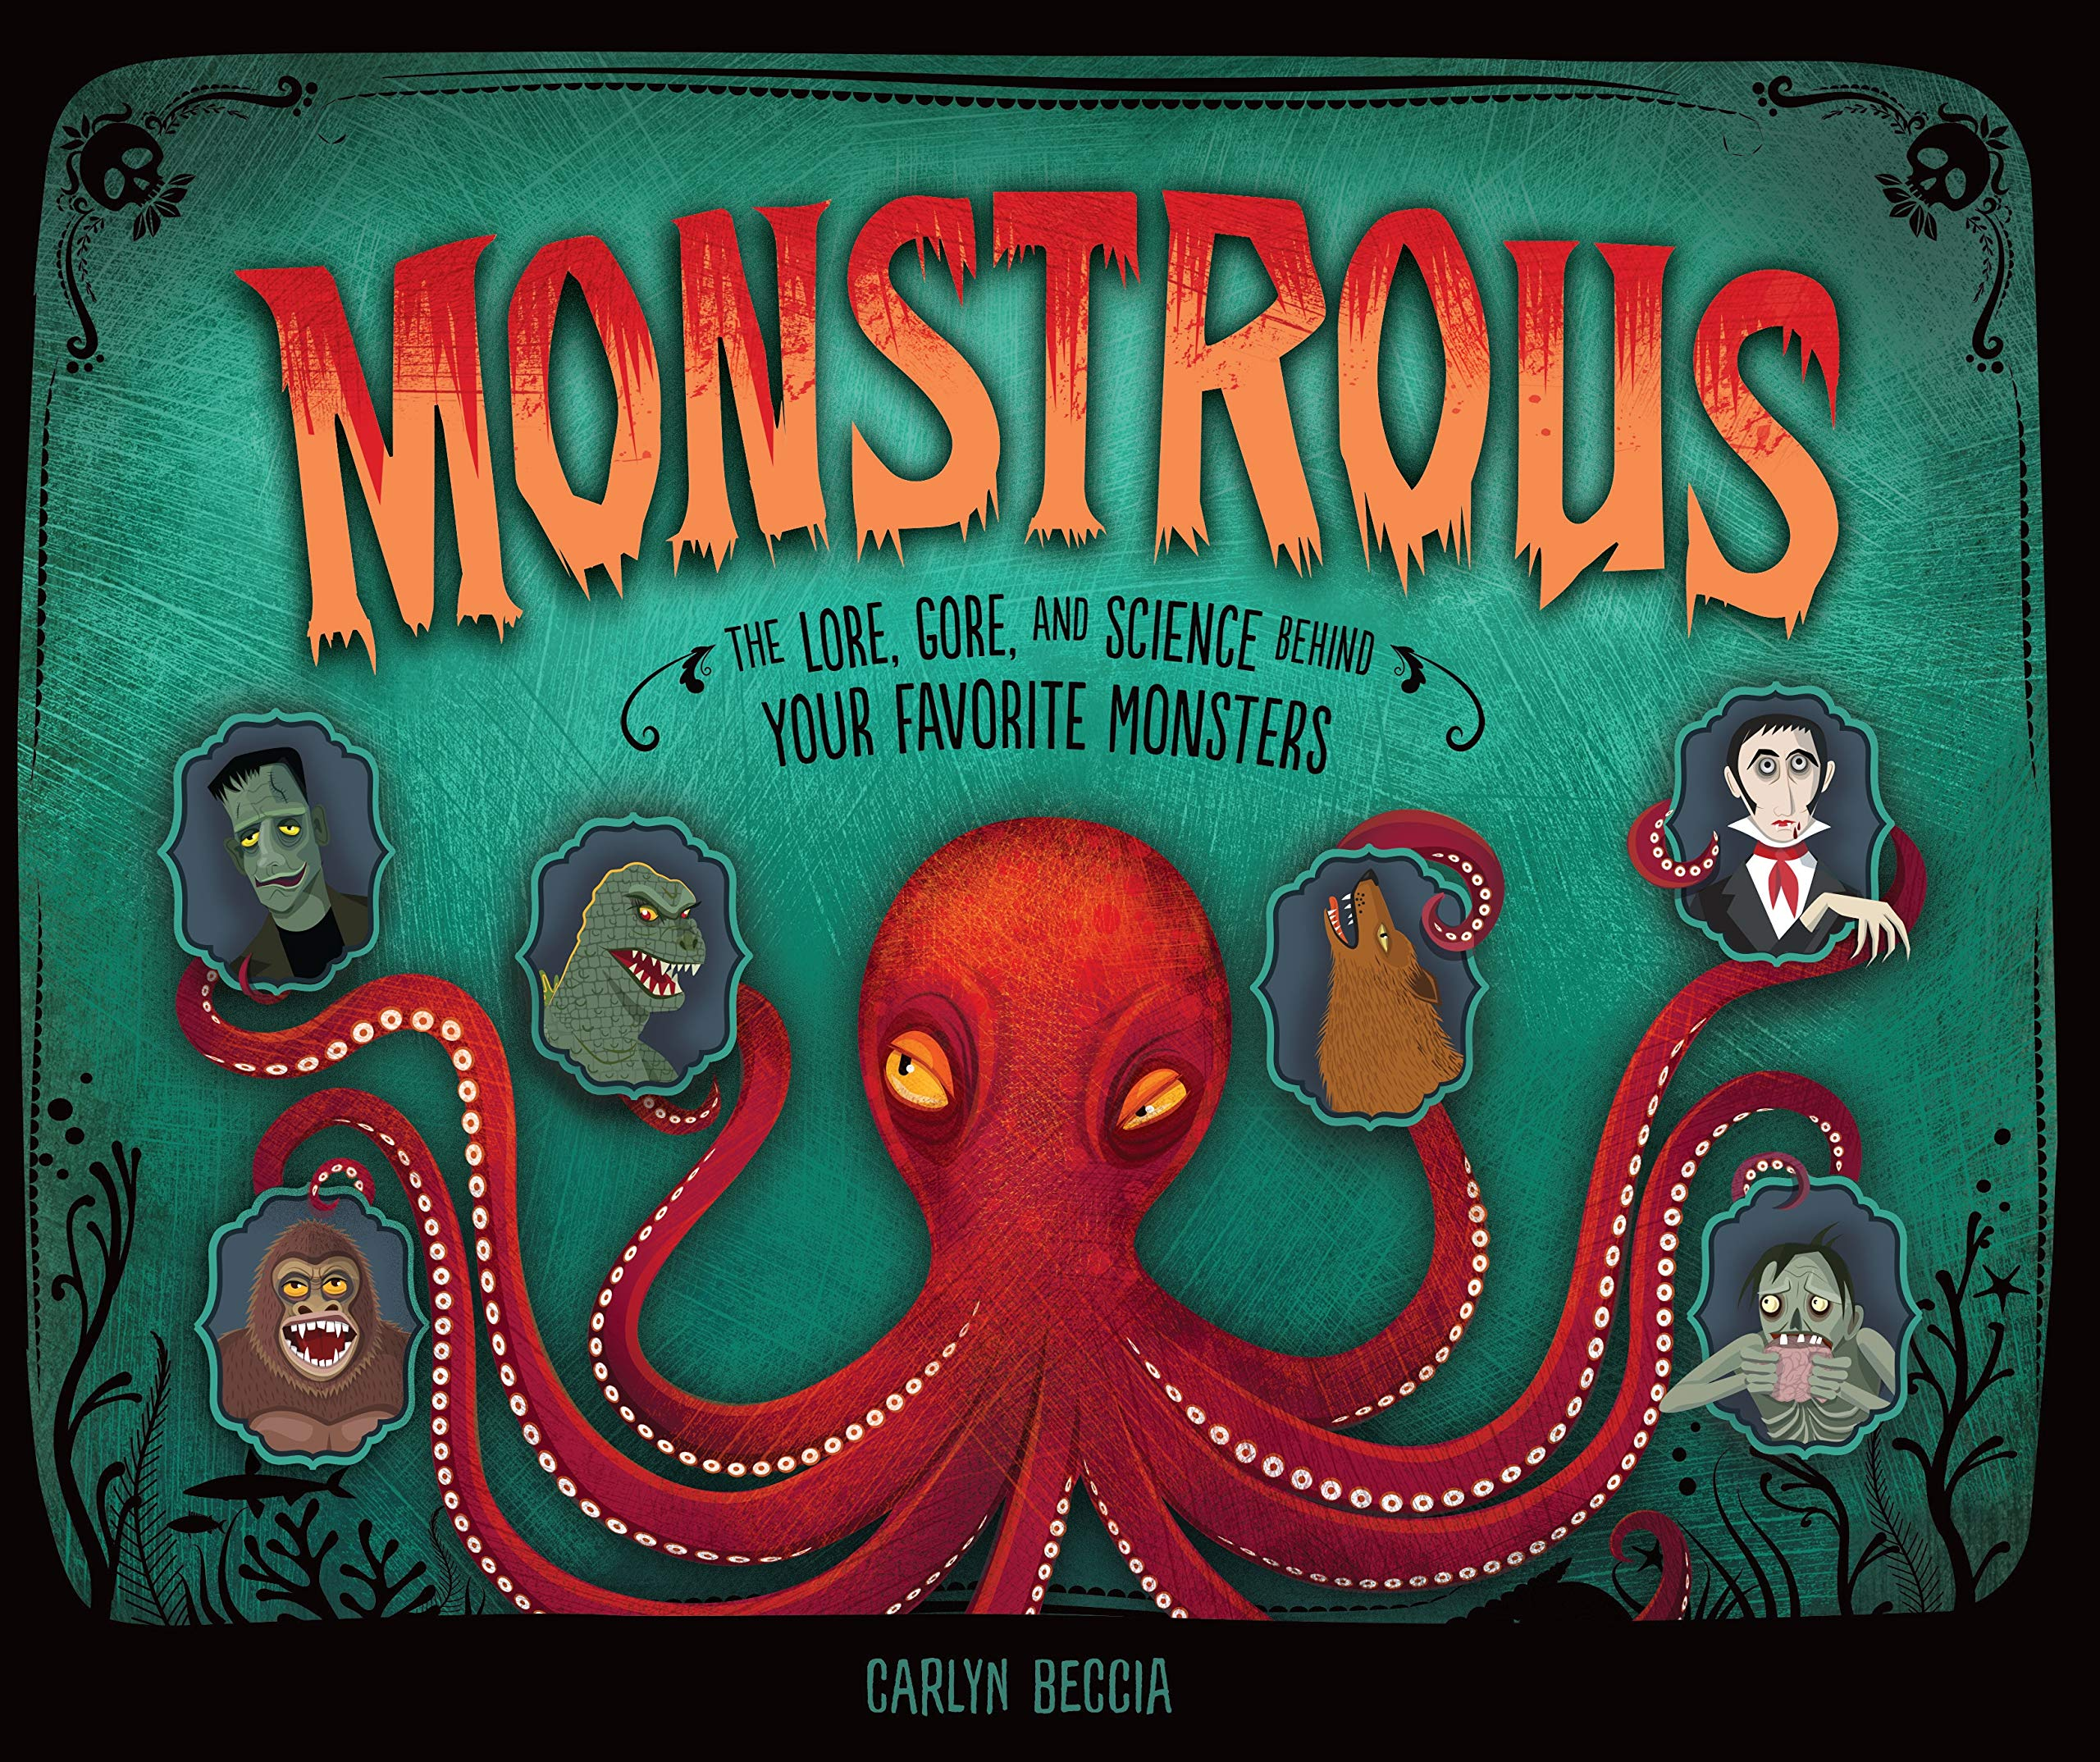 'Monstrous: The Lore, Gore, and Science Behind Your Favorite Monsters' -- children's book review